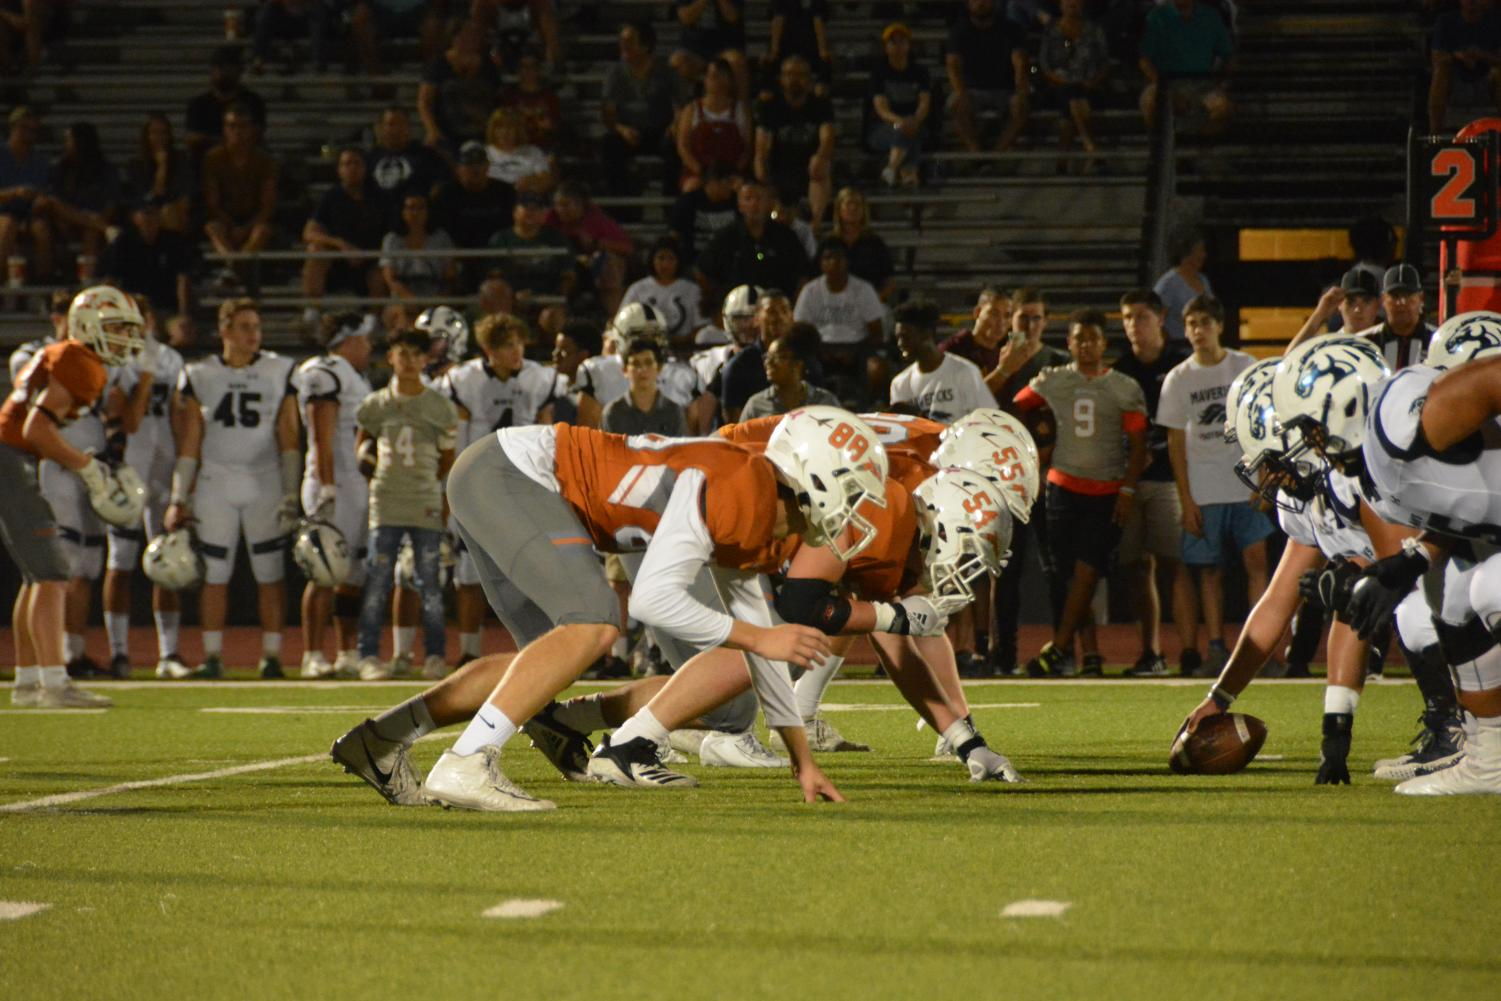 Defensive+linemen+Josef+Borkowski+%2721%2C+Dylan+Vorpahl+%2720%2C+and+Jackson+Metzger+%2721+get+in+their+stances+before+the+Mavericks+execute+their+play.+Due+to+the+defensive+line%27s+pressure%2C+the+defense+was+able+to+prevent+the+Mavericks+from+getting+a+first+down+on+this+play.